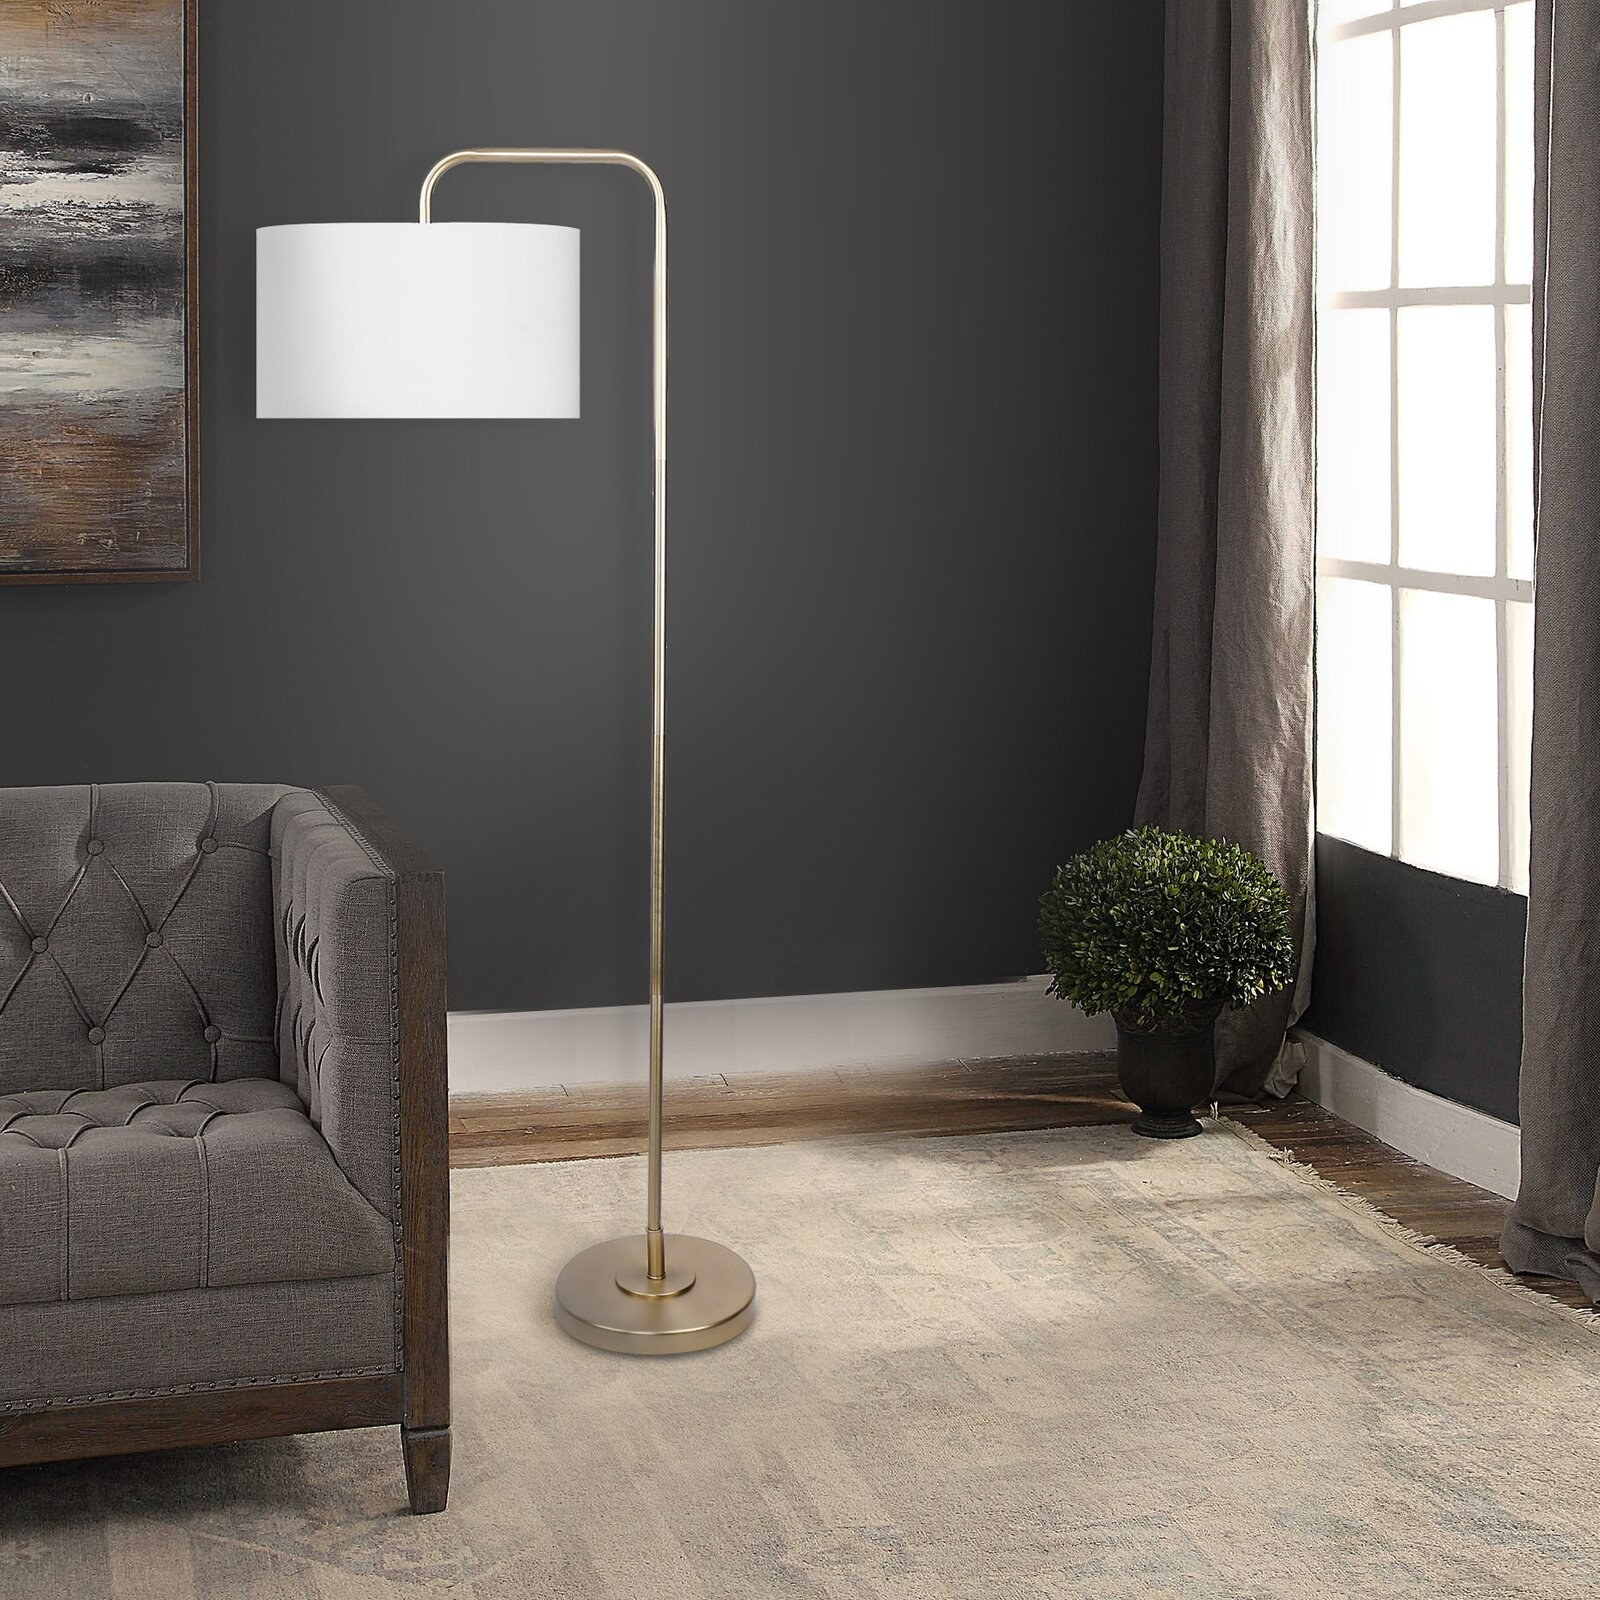 The lamp, which has an arched, curved neck, with a drum shade and bulb hanging from the end